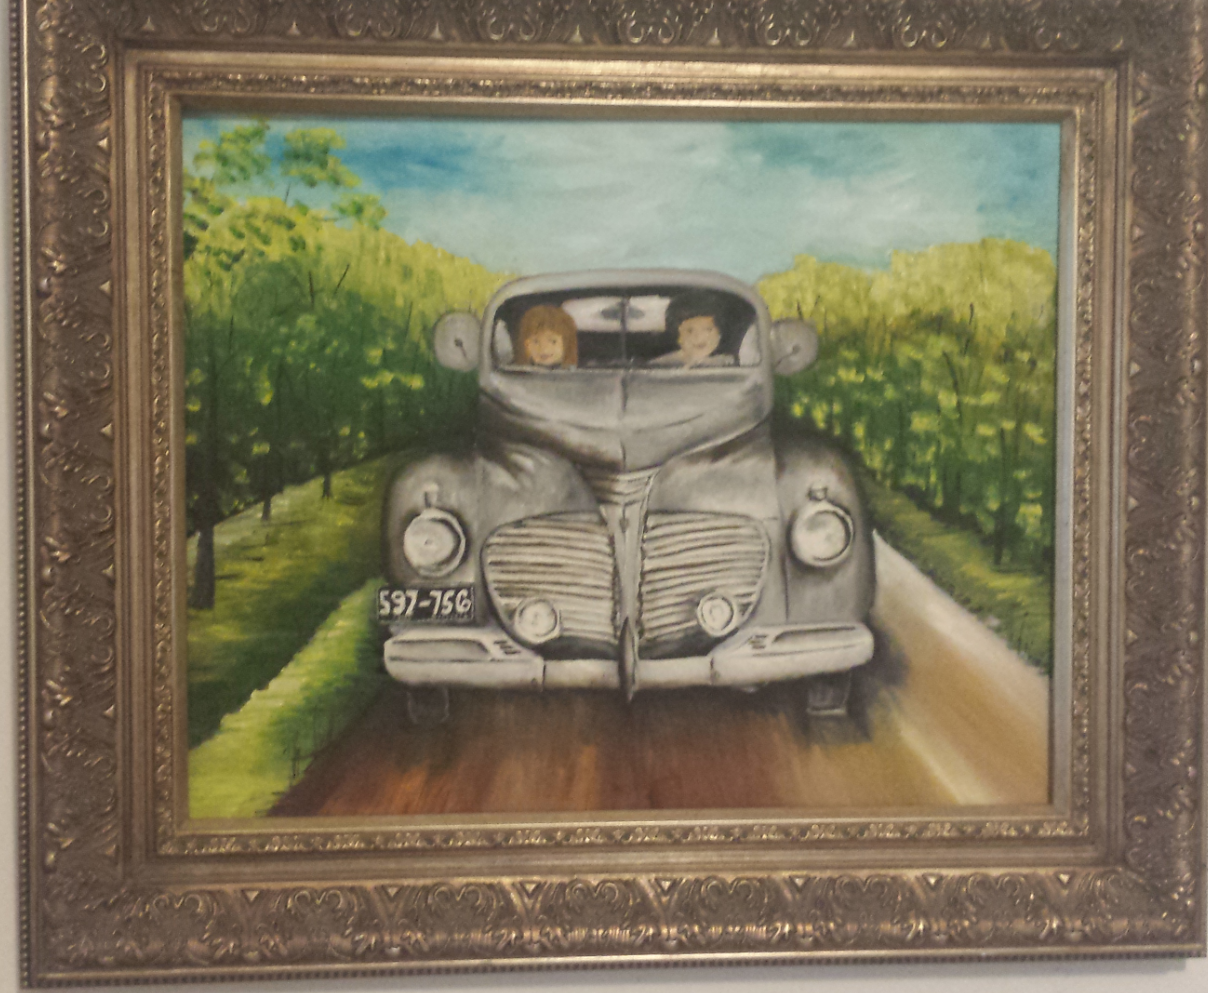 The Courting Car